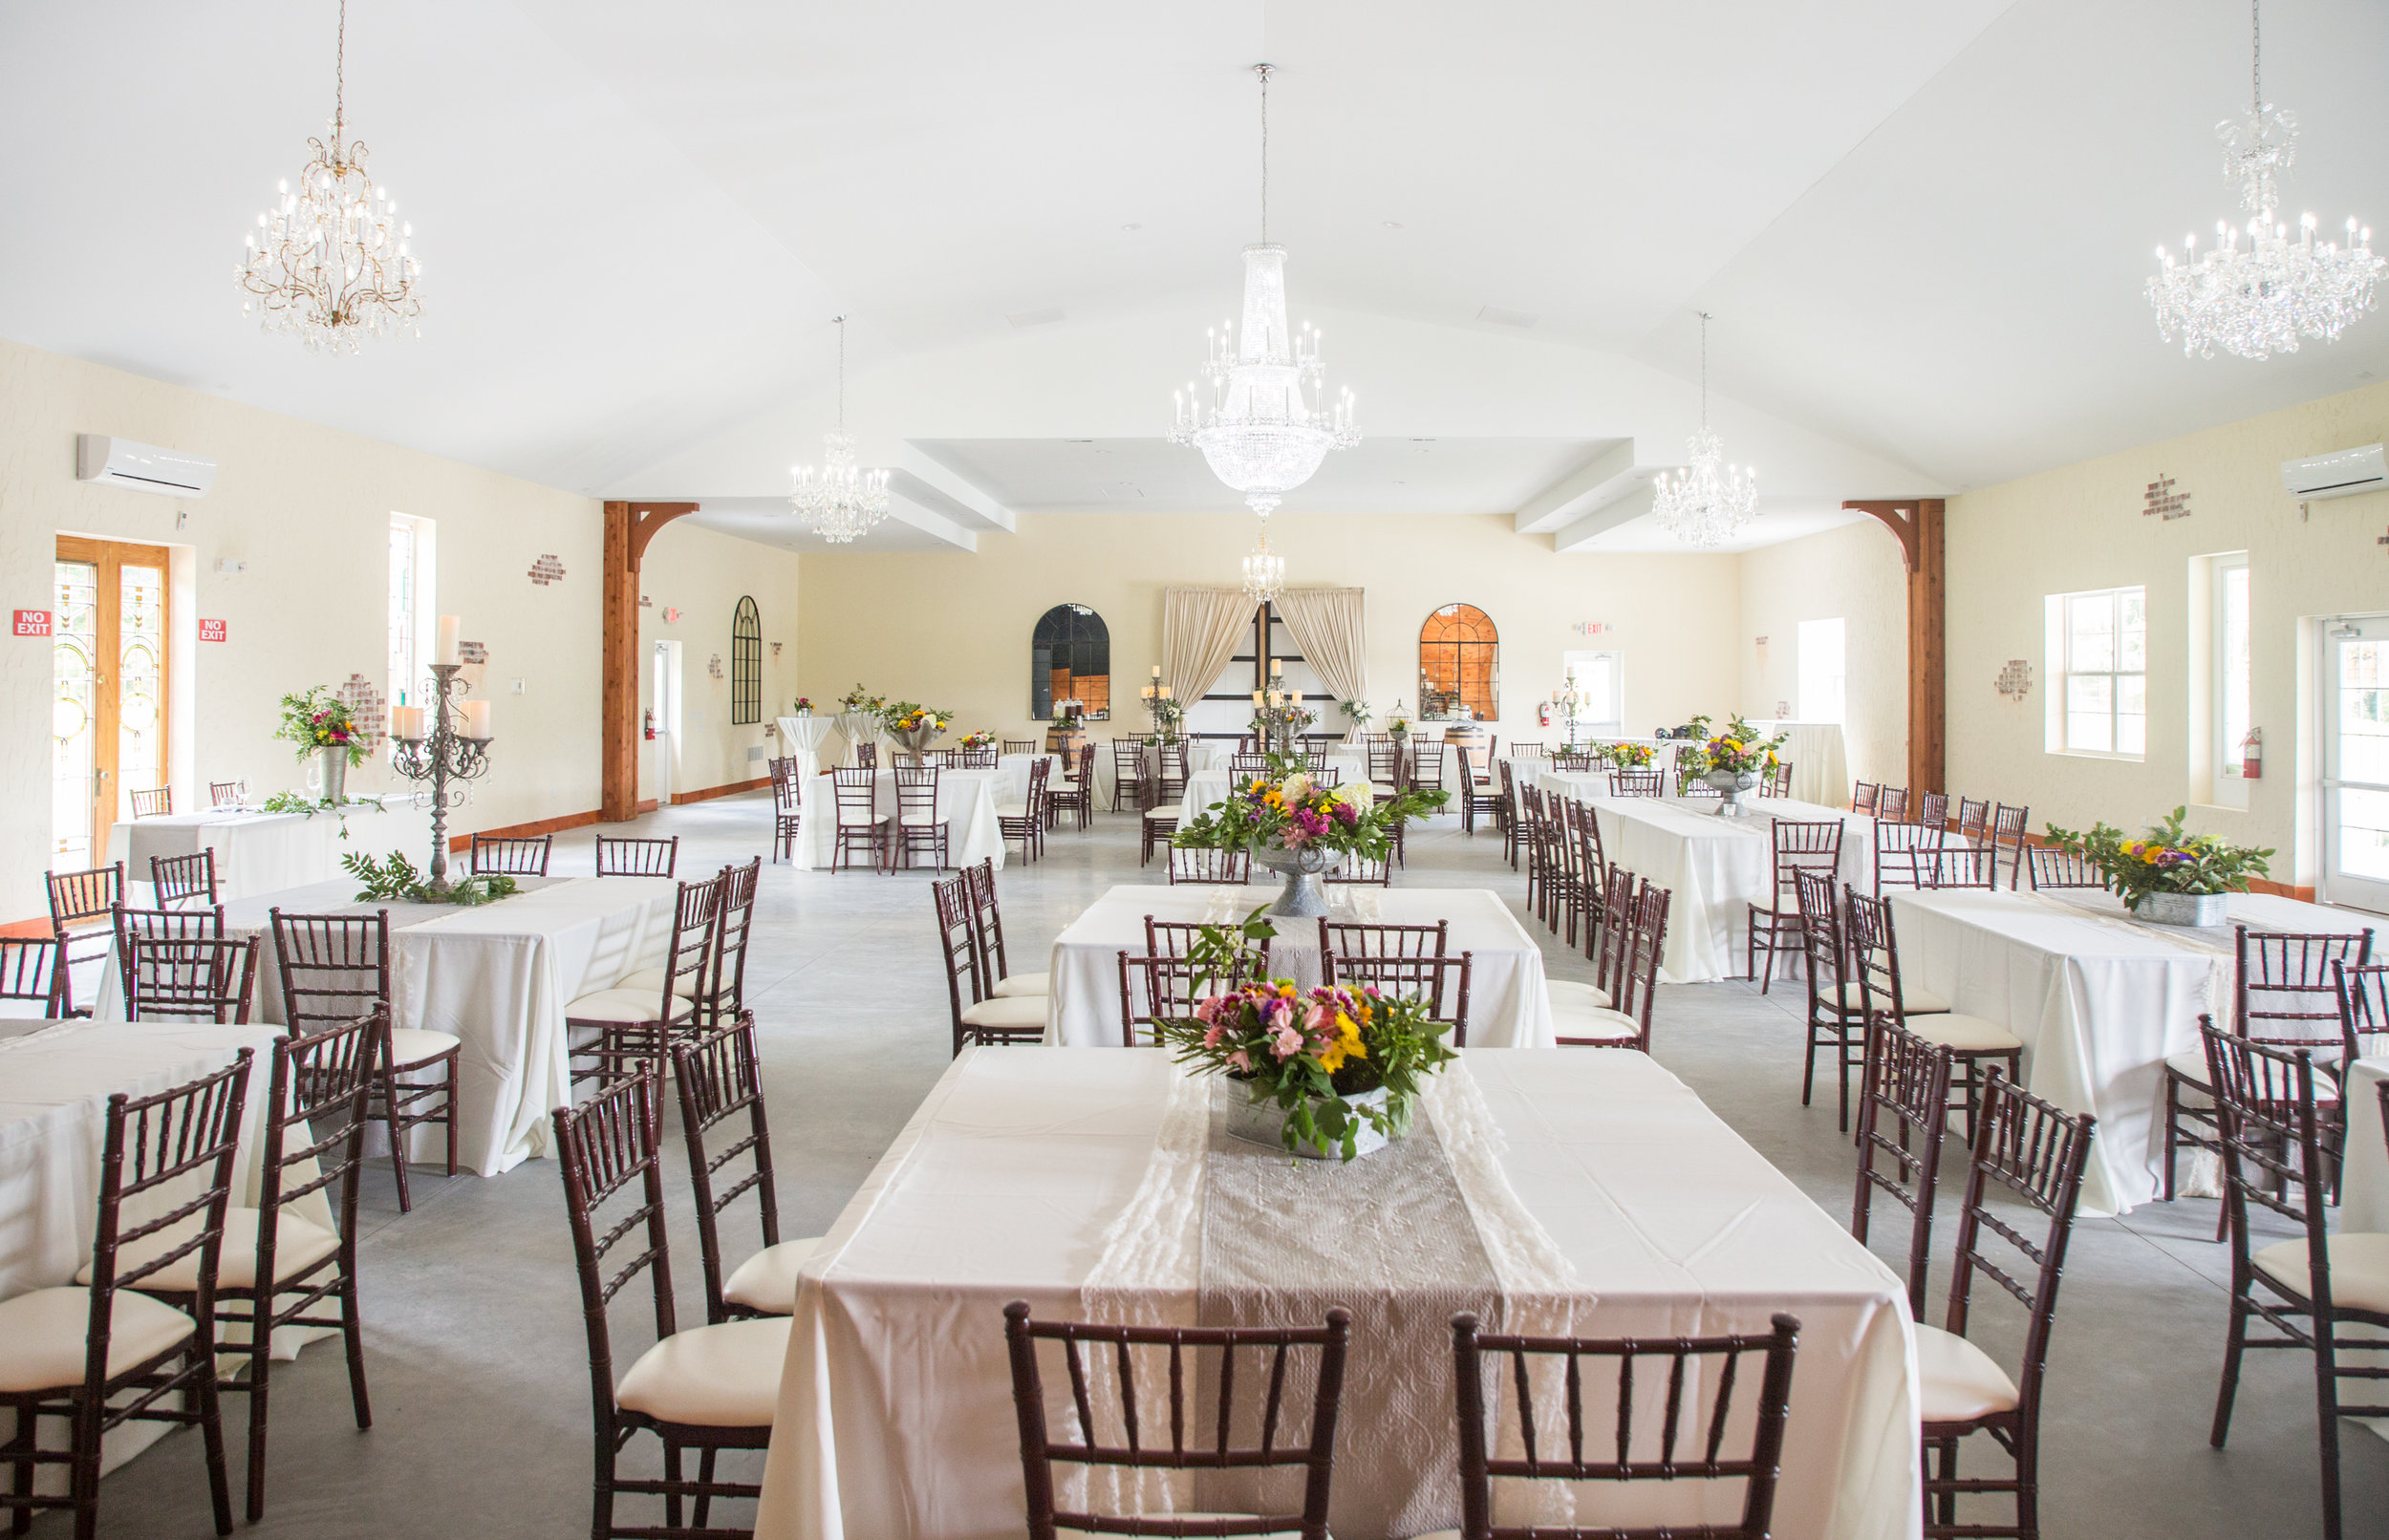 Smokey Hollow's interior is bright and elegant without being too rustic. Located in Selbyville, De, the wedding venue is situated on a field surrounded by trees. It is secluded, despite being only minutes from the famous Delaware beaches.